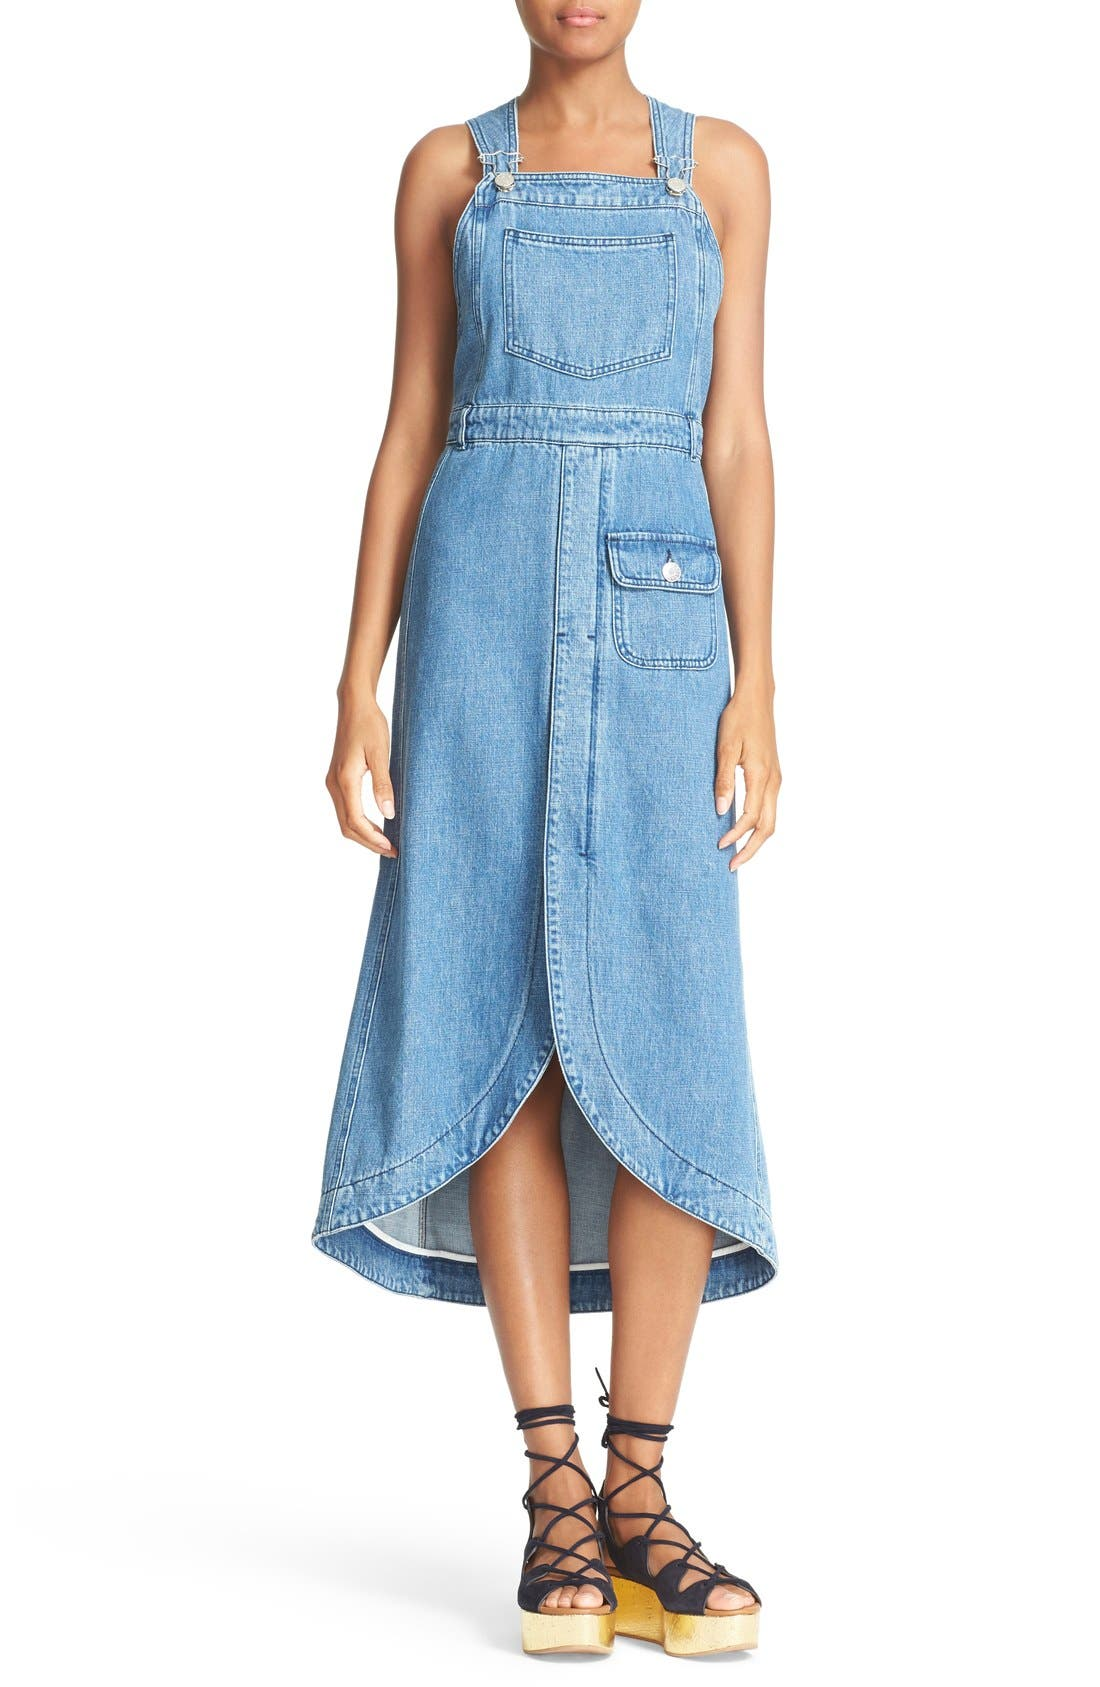 Alternate Image 1 Selected - See by Chloé Denim Overall Dress